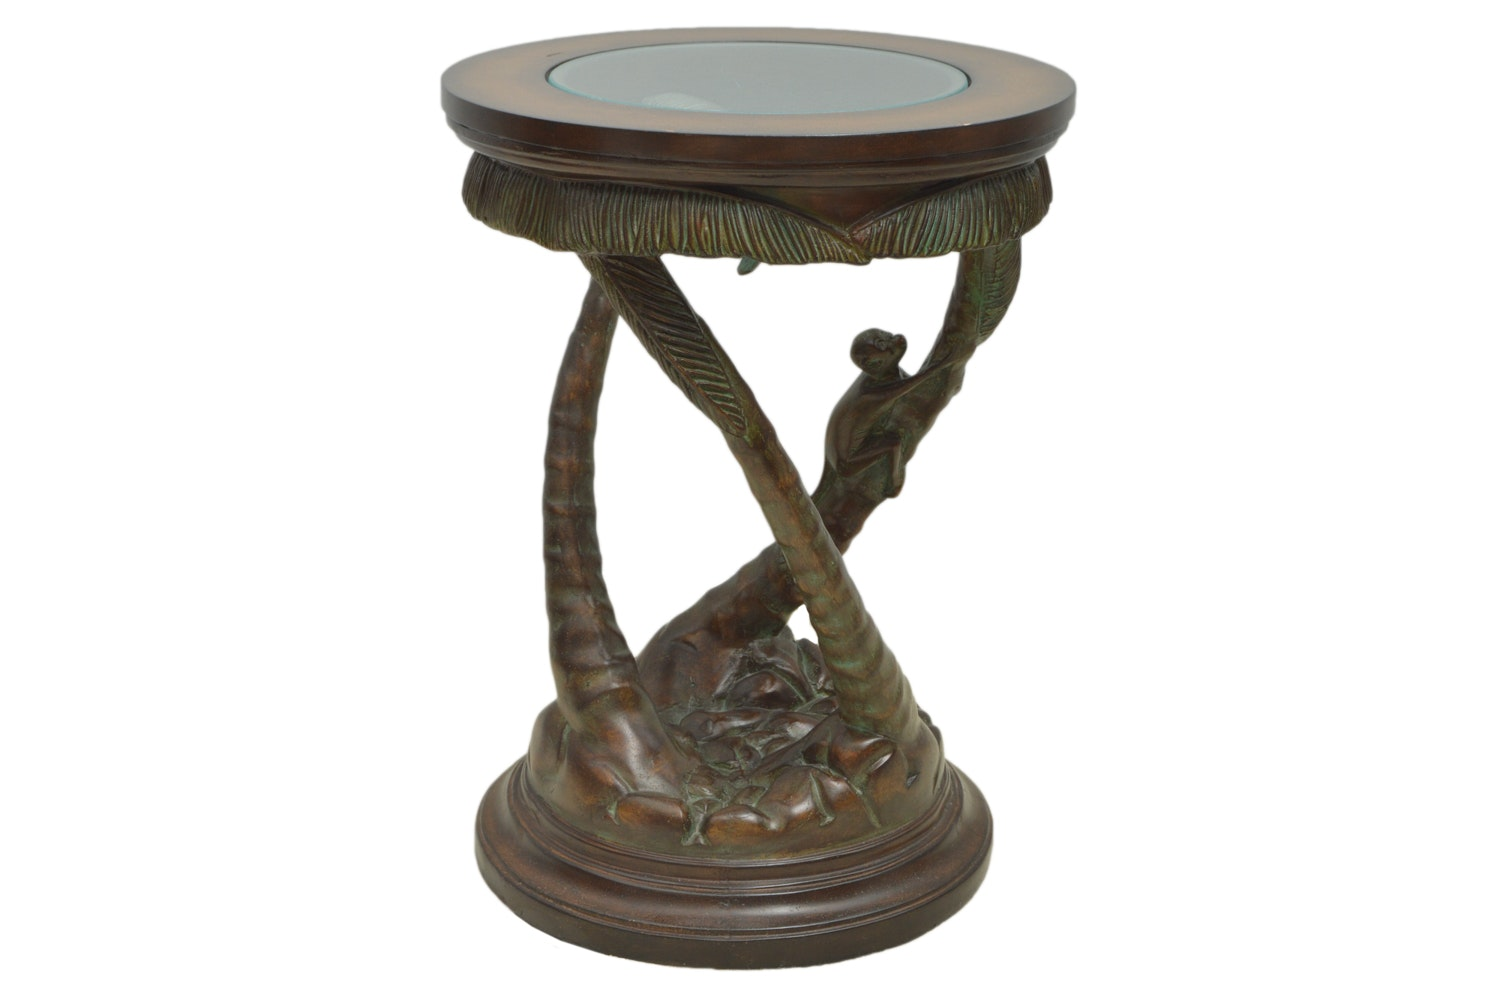 Glass Top Pedestal Side Table With Monkey Motif ...